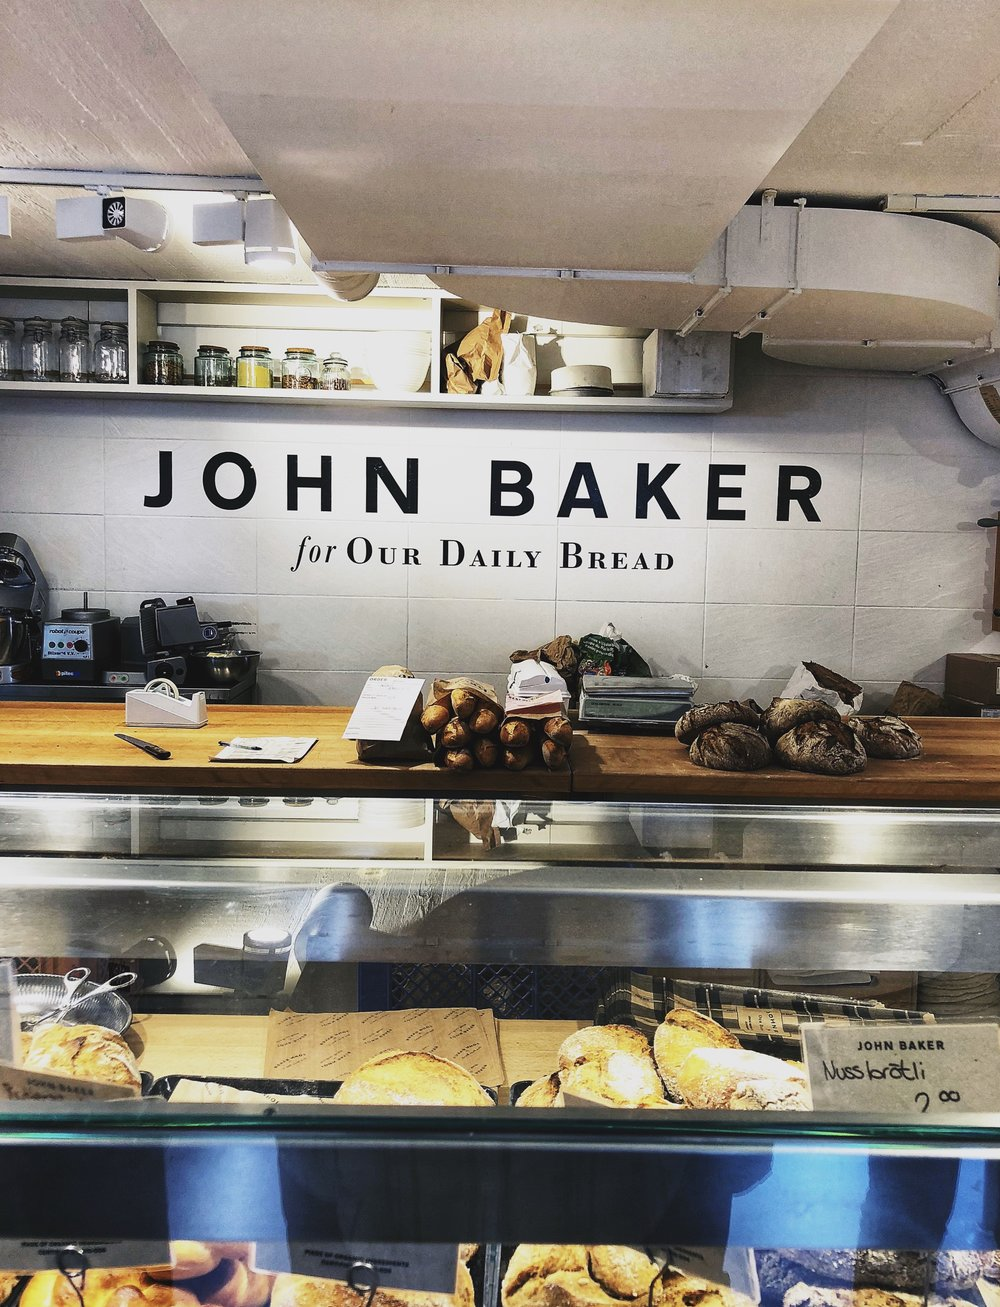 Upon walking into  John Baker , I immediately wanted all the breads!!! Hello carb-city. We grabbed a few smaller baked goods to save as snacks for our travels. They also make some amazing in house drinks and I grabbed a refreshing lemonade to quench my thirst on yet another hot hot day.